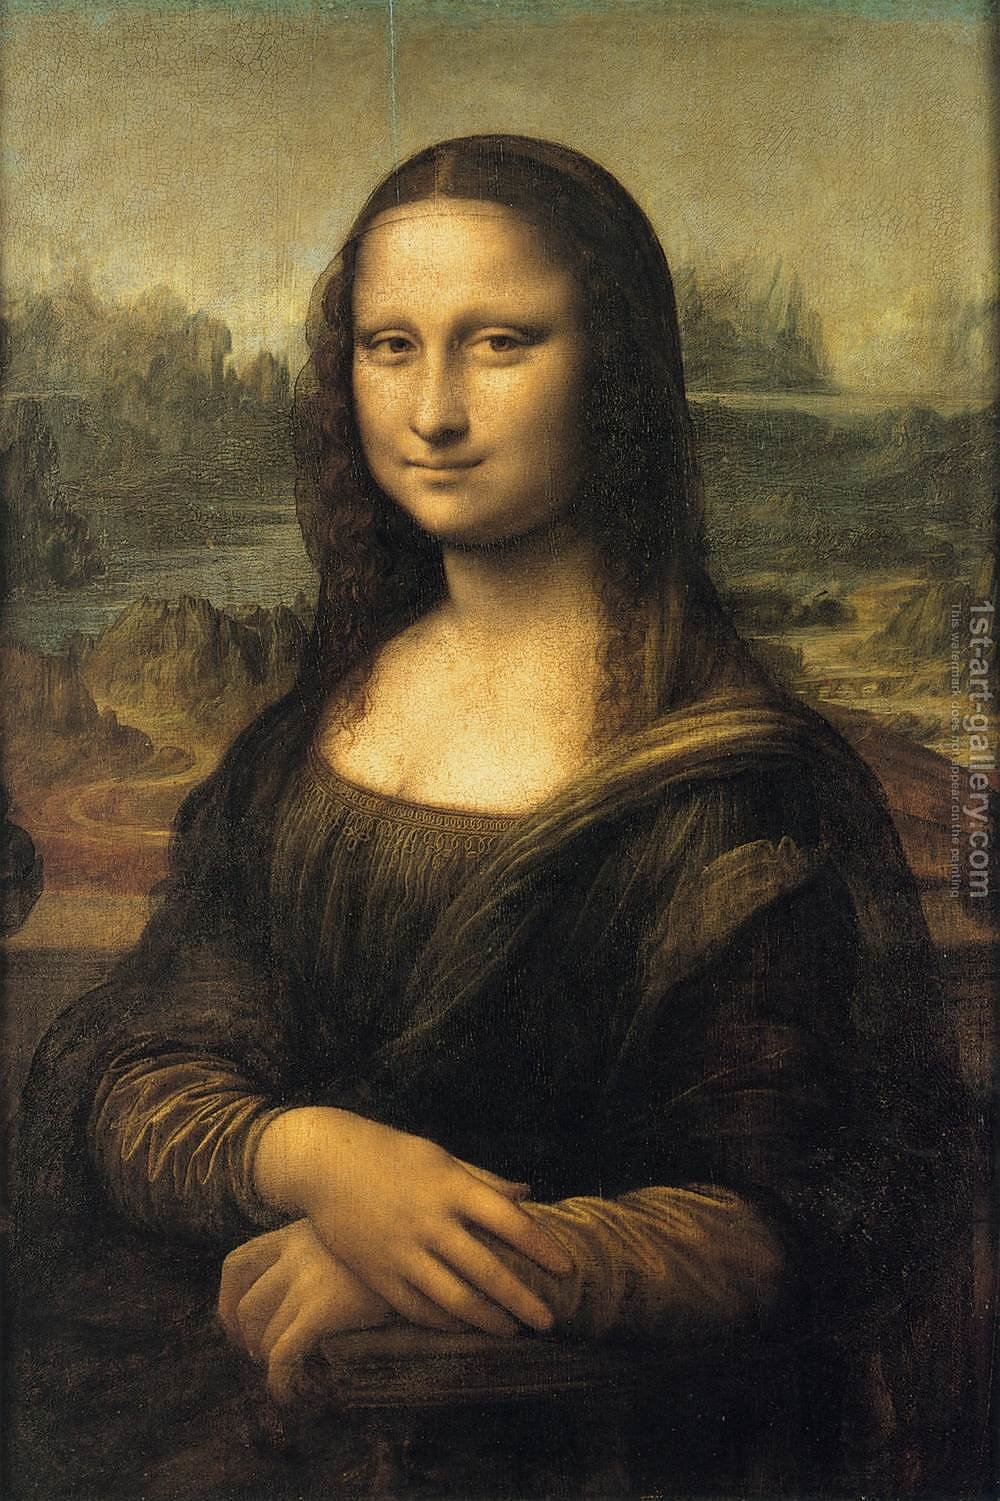 Huge version of Mona Lisa (or La Gioconda)